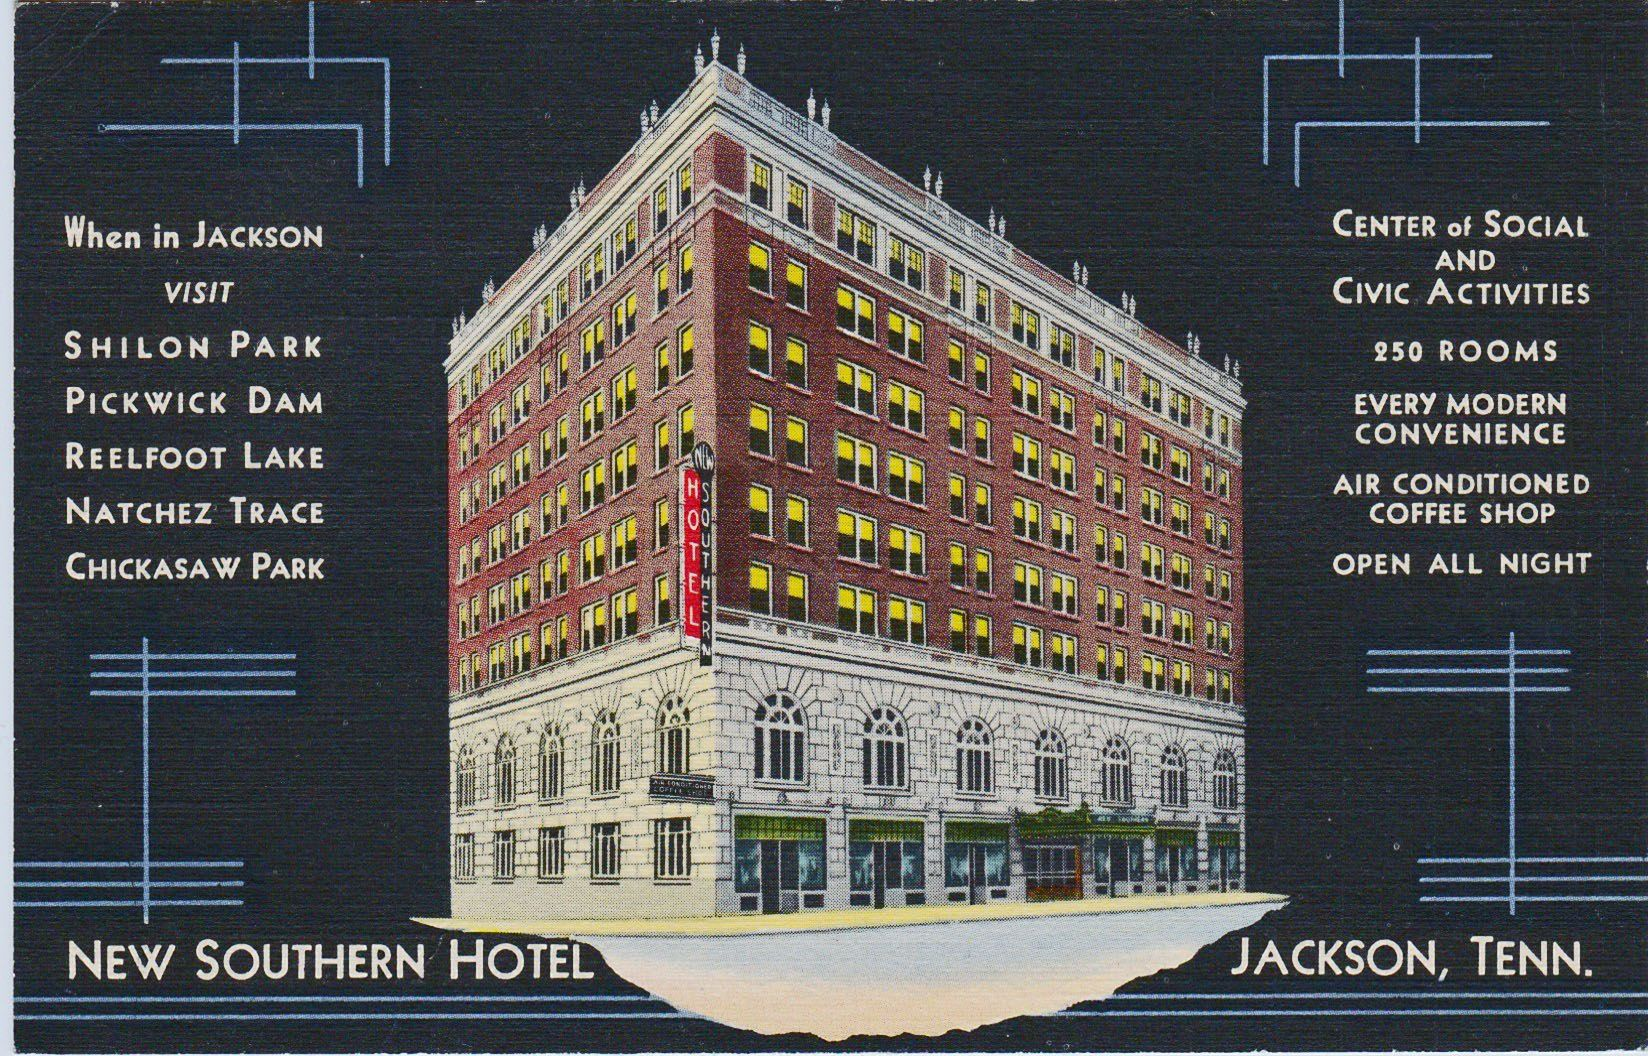 New Southern Hotel Jackson Tn Postmarked Feb 23 1939 Home Of